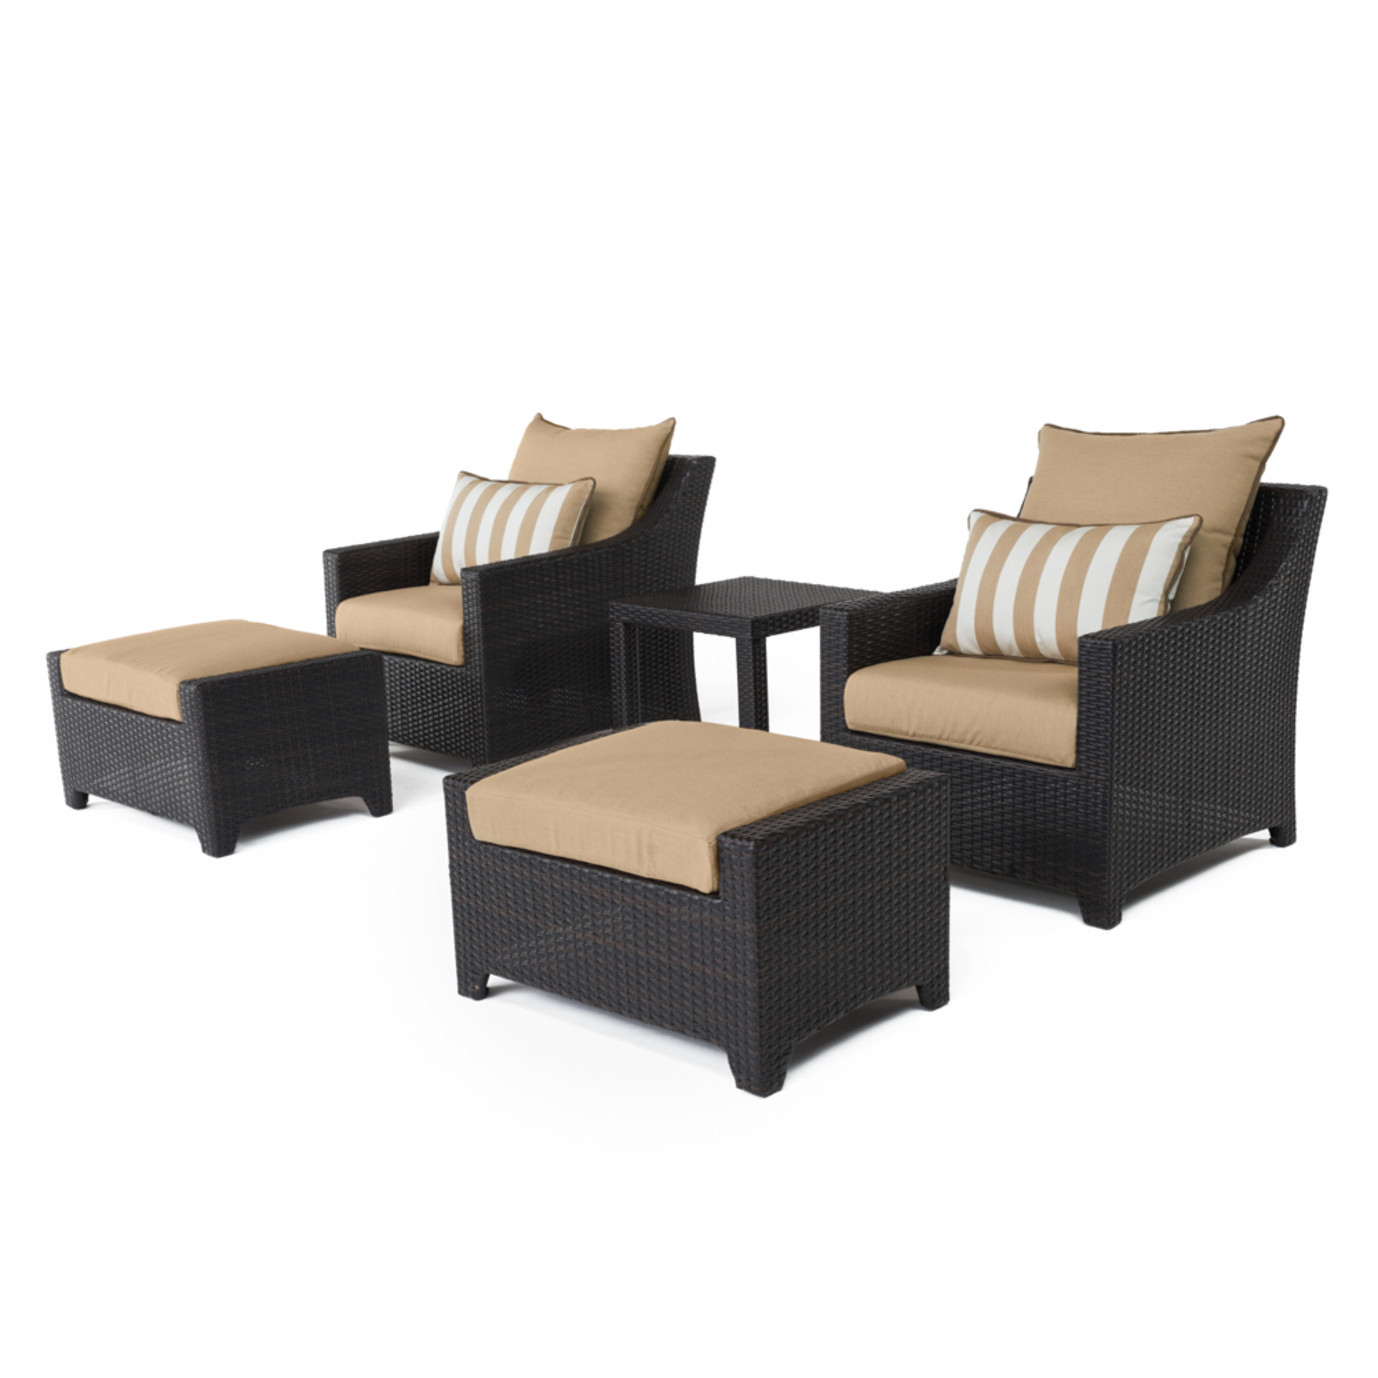 Deco™ 5 Piece Club Chair & Ottoman Set - Maxim Beige